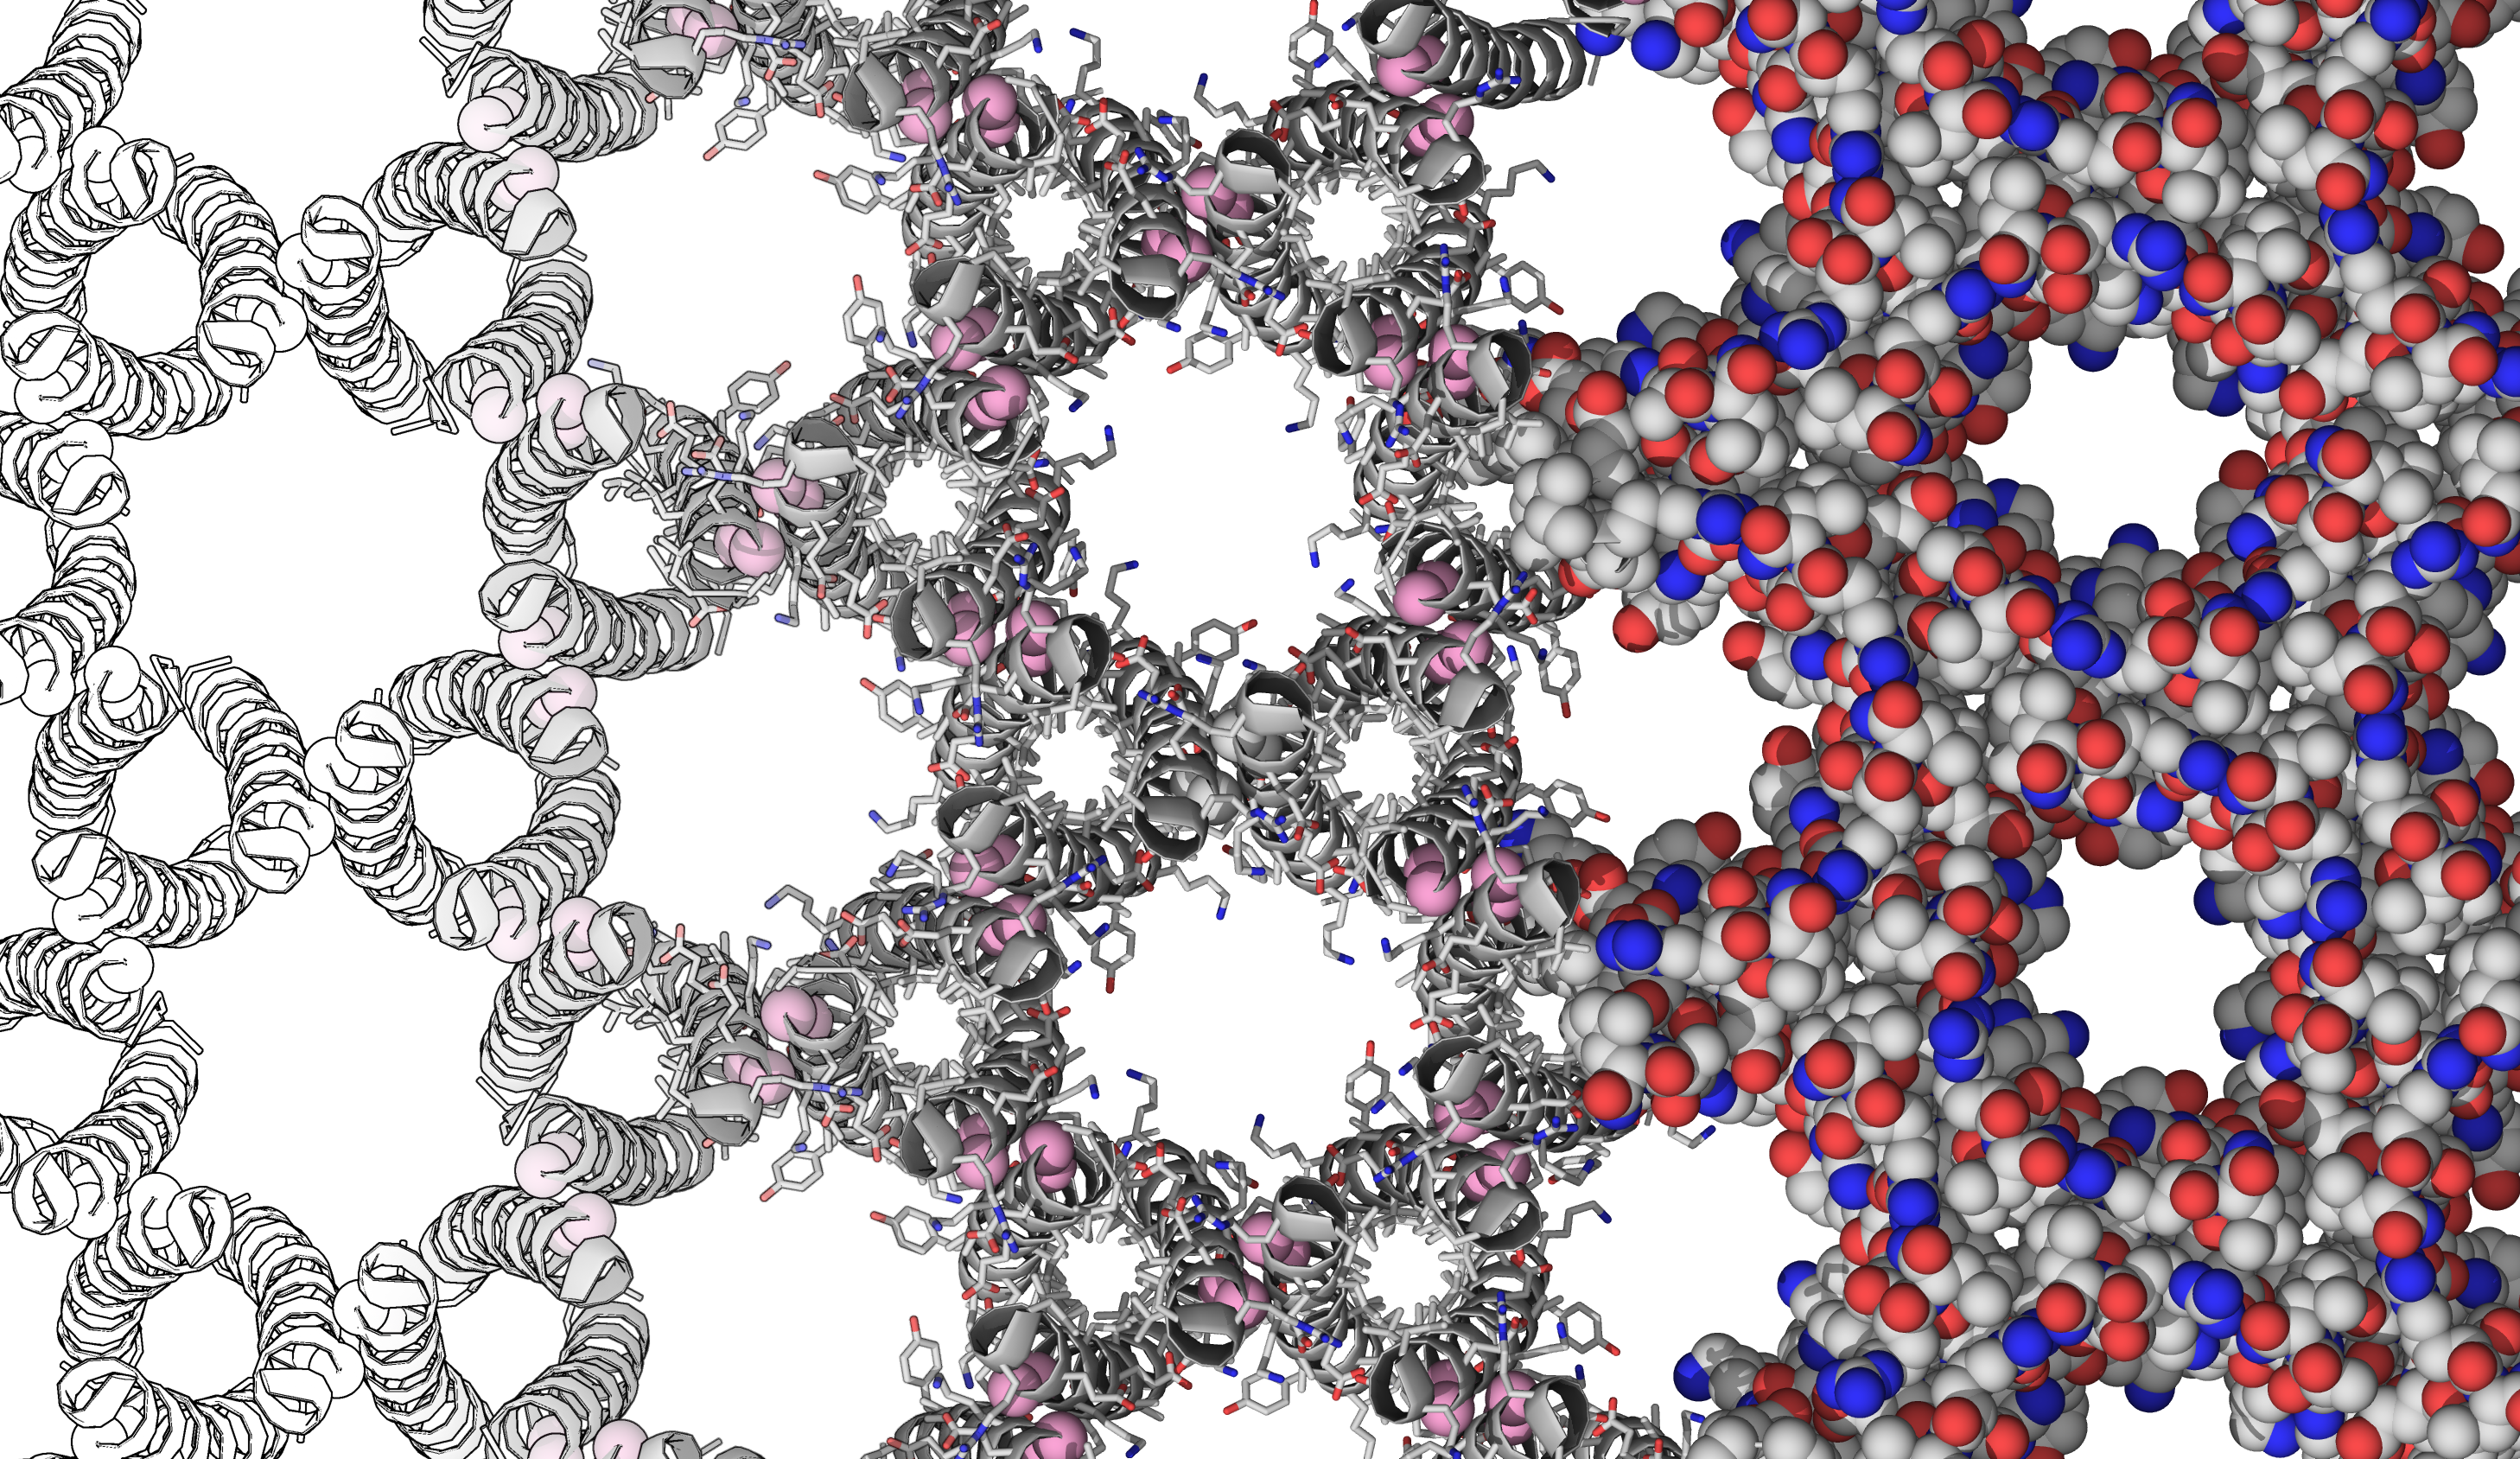 An illustration of the researchers' target protein crystal. (ART: Christopher MacDermaid)